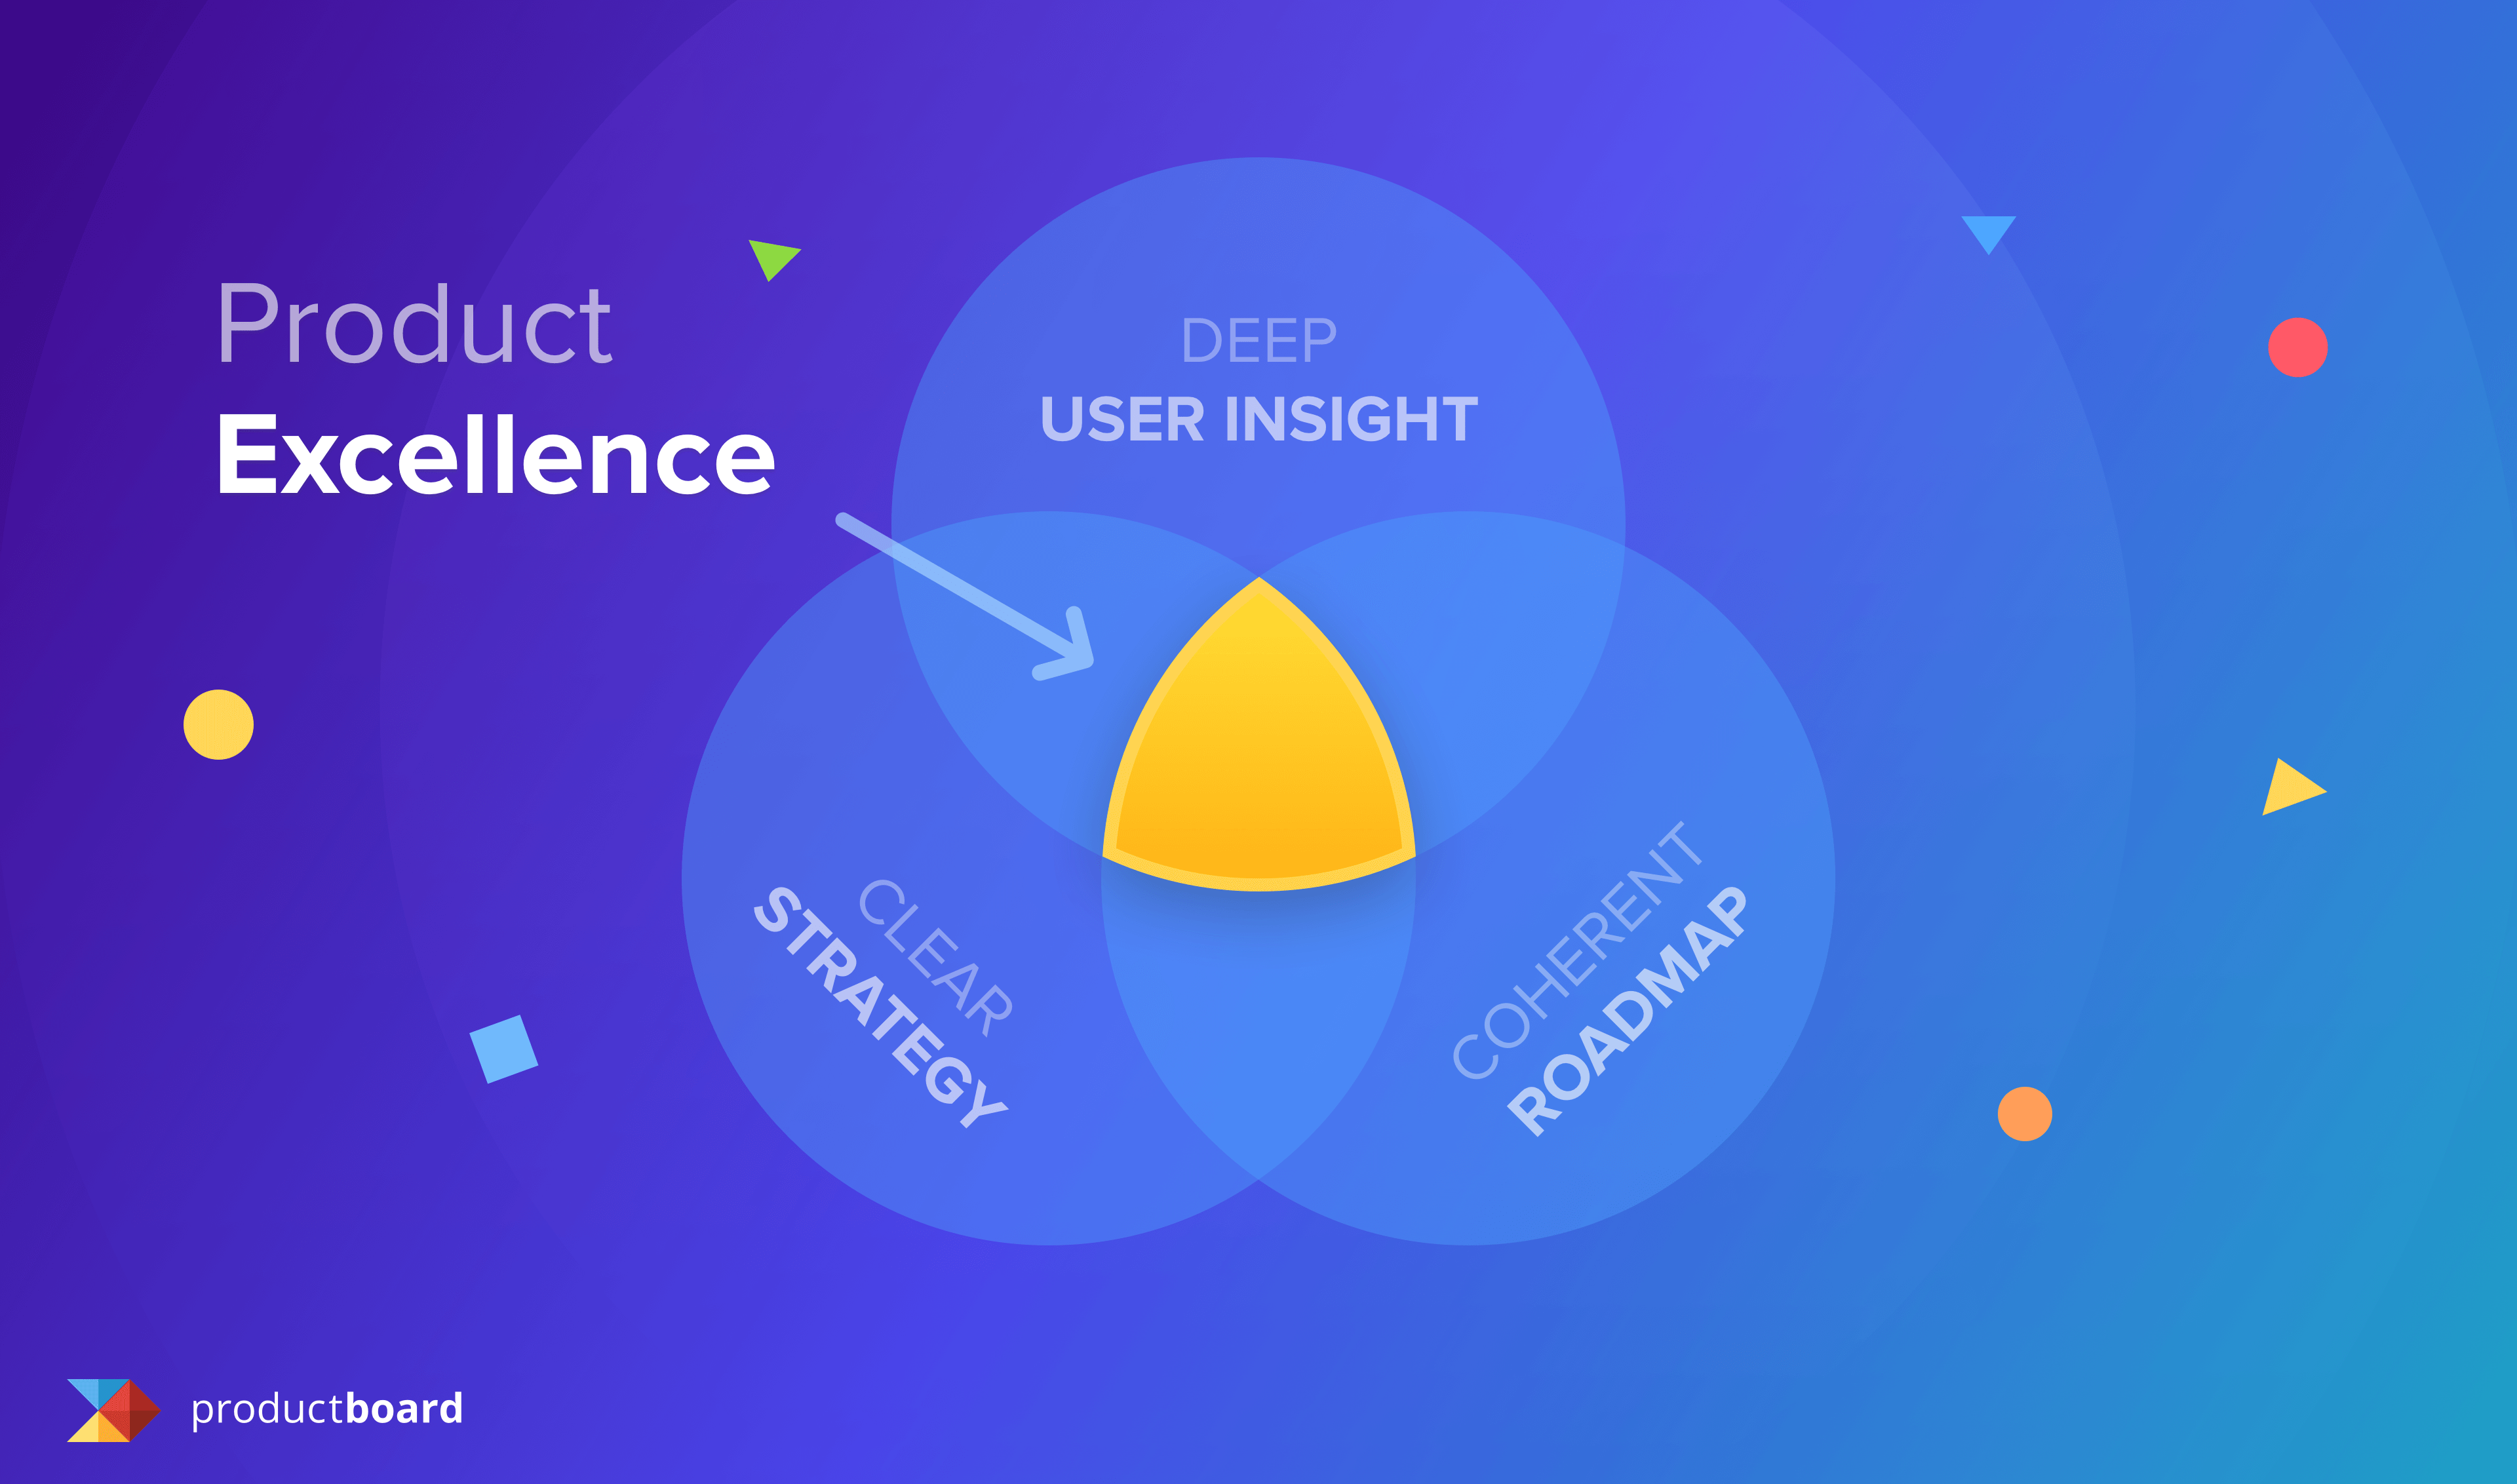 The 3 pillars of Product Excellence